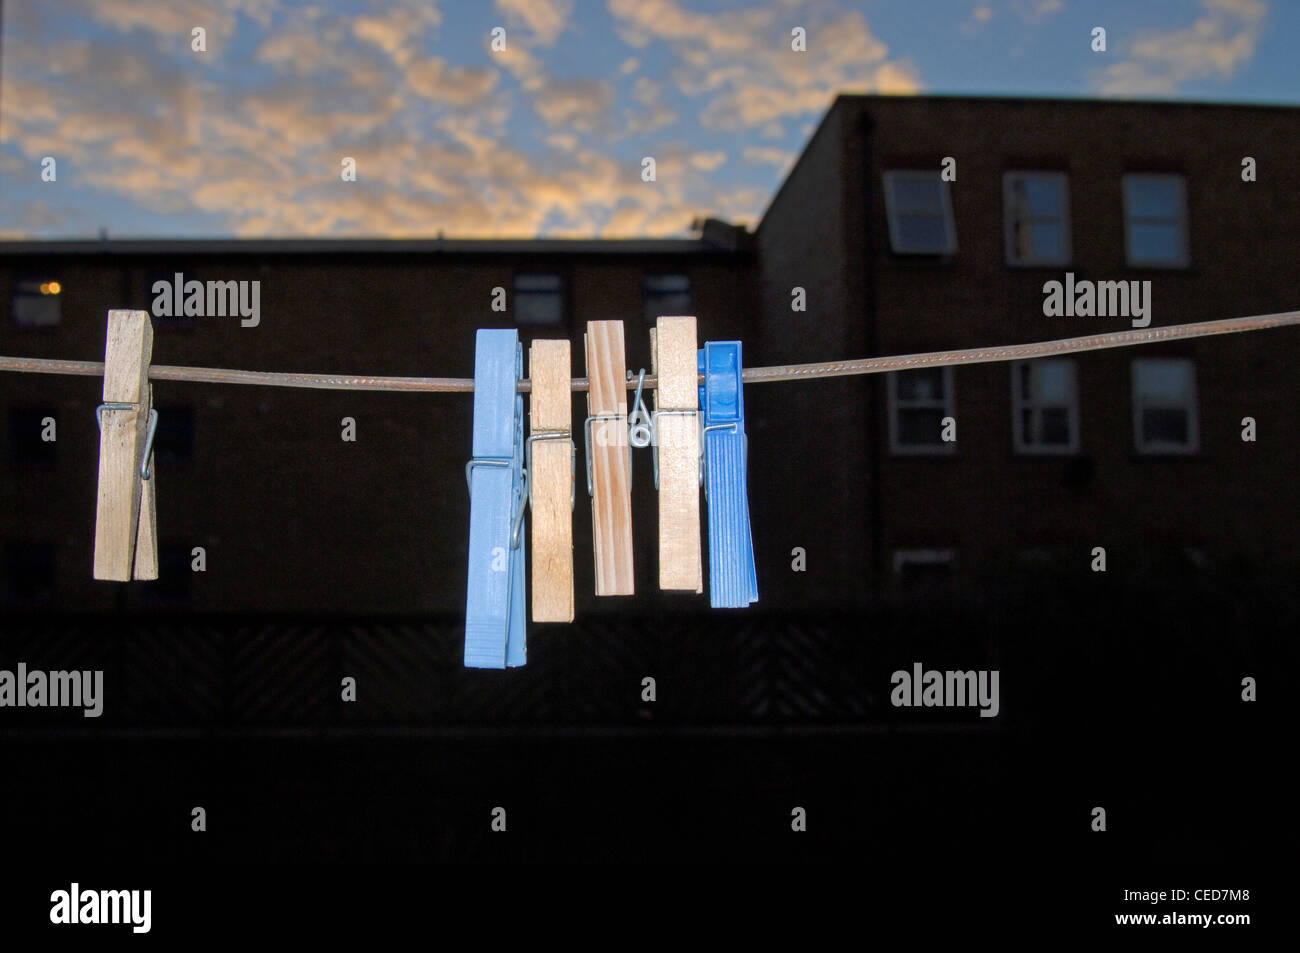 London east end, Skyline,Clothes line,Clothes pegs,Colorful,Urban,Housing, Stock Photo